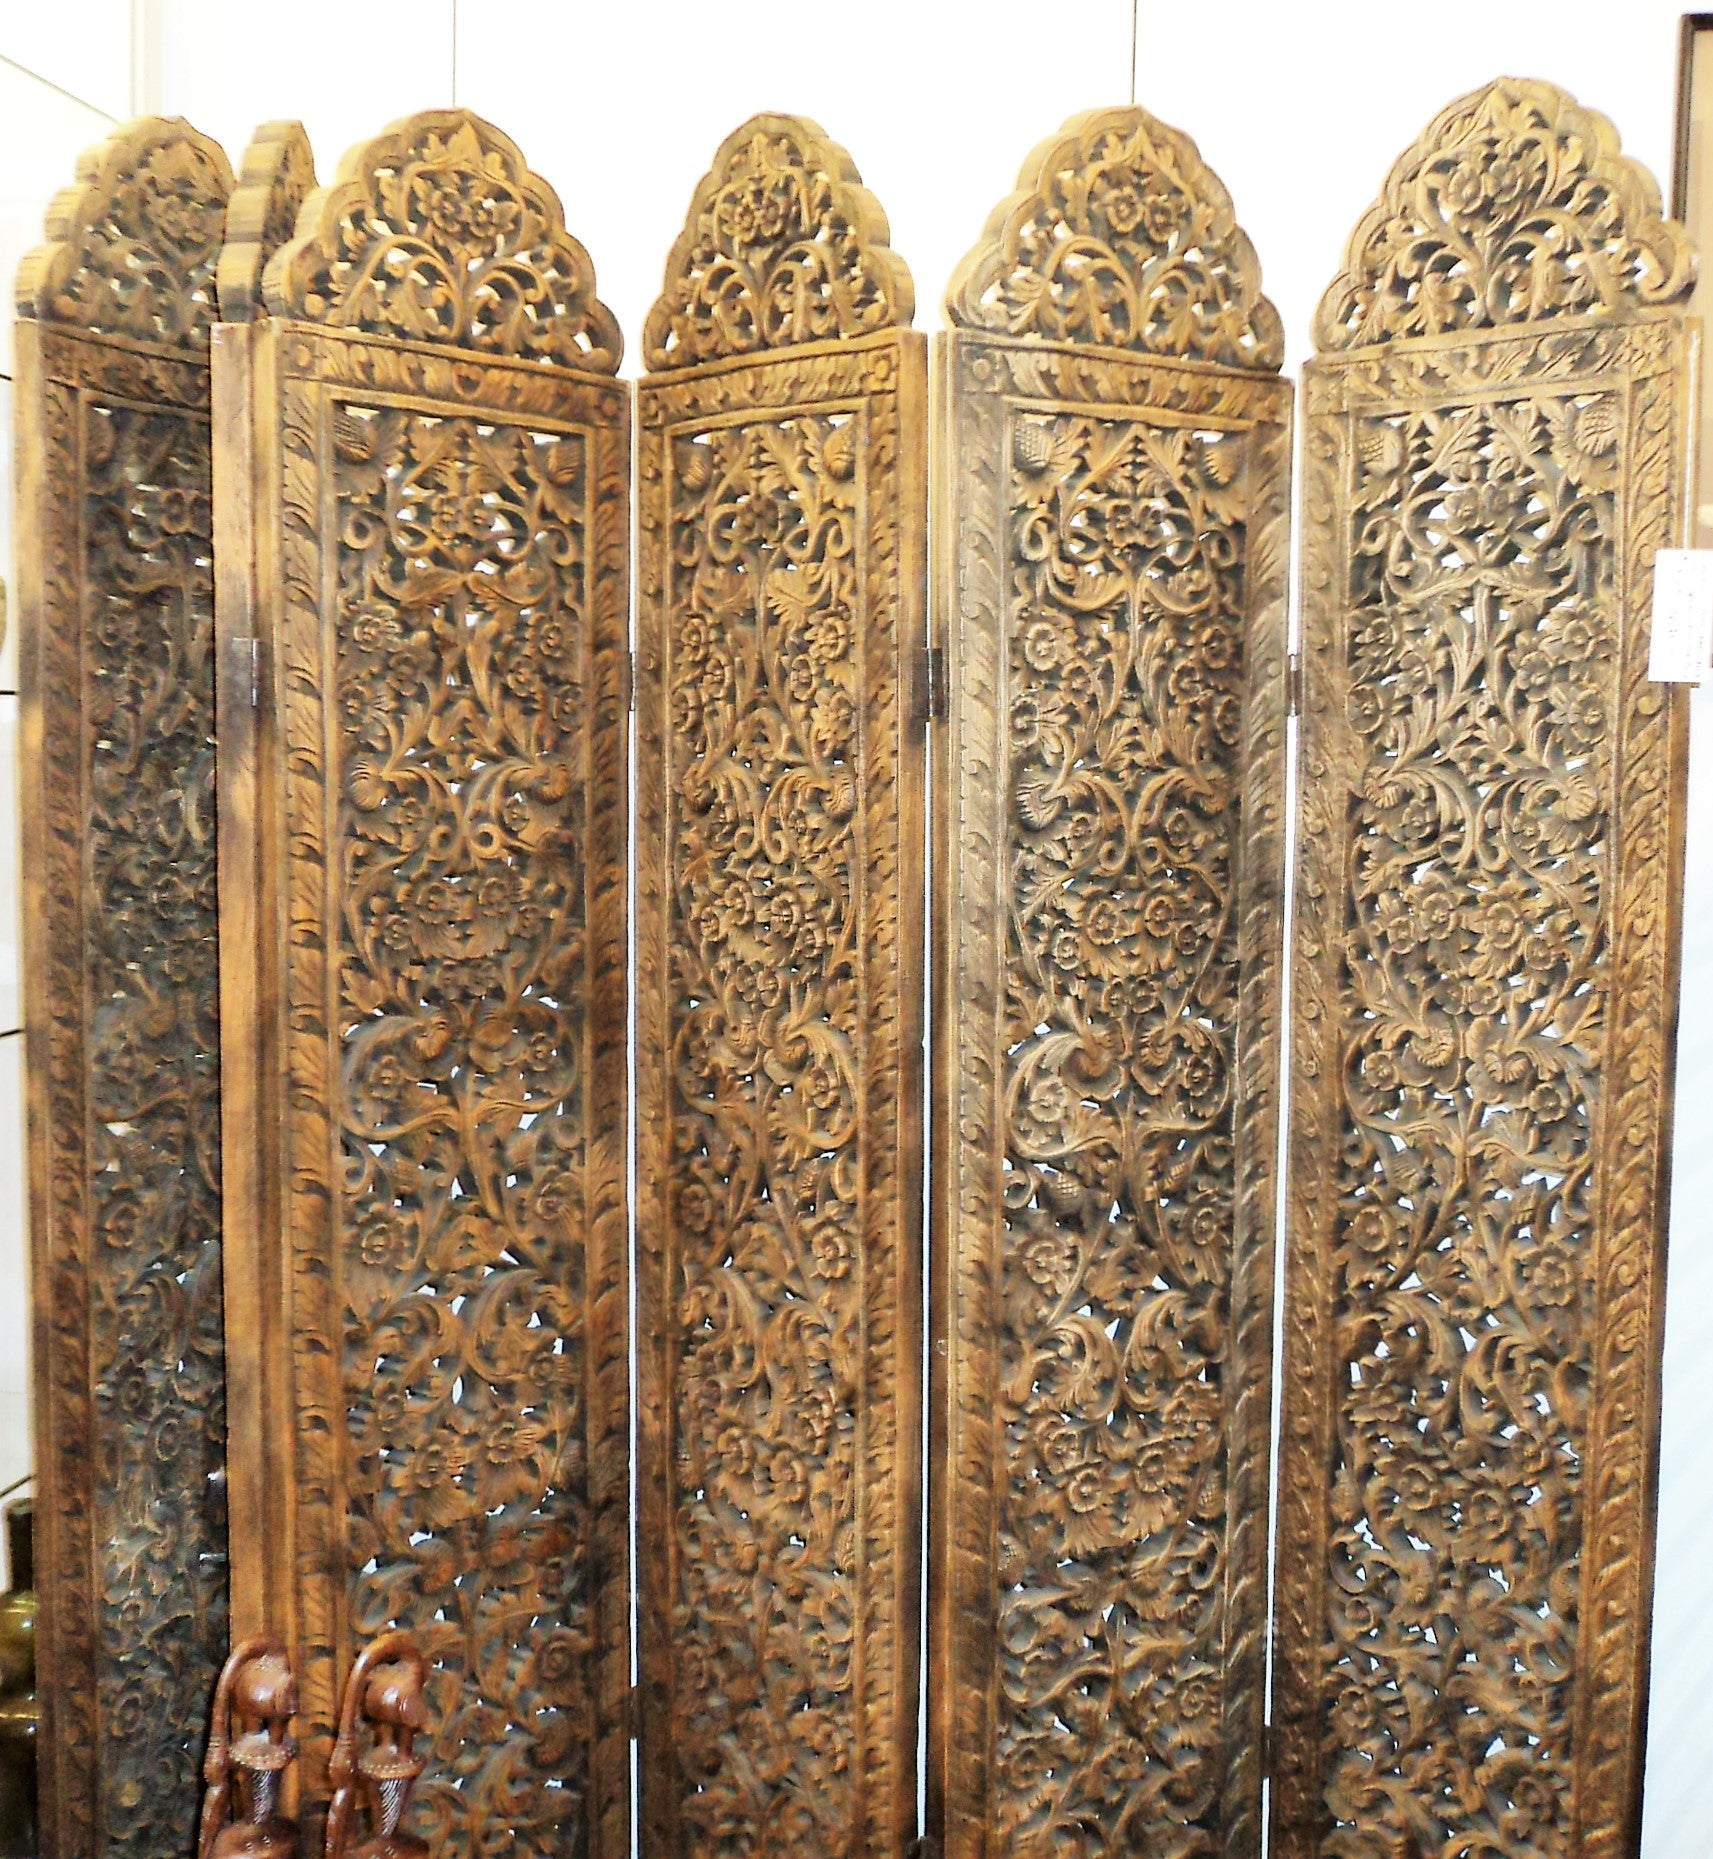 Six-panel Wood Carved Reticulated Screen